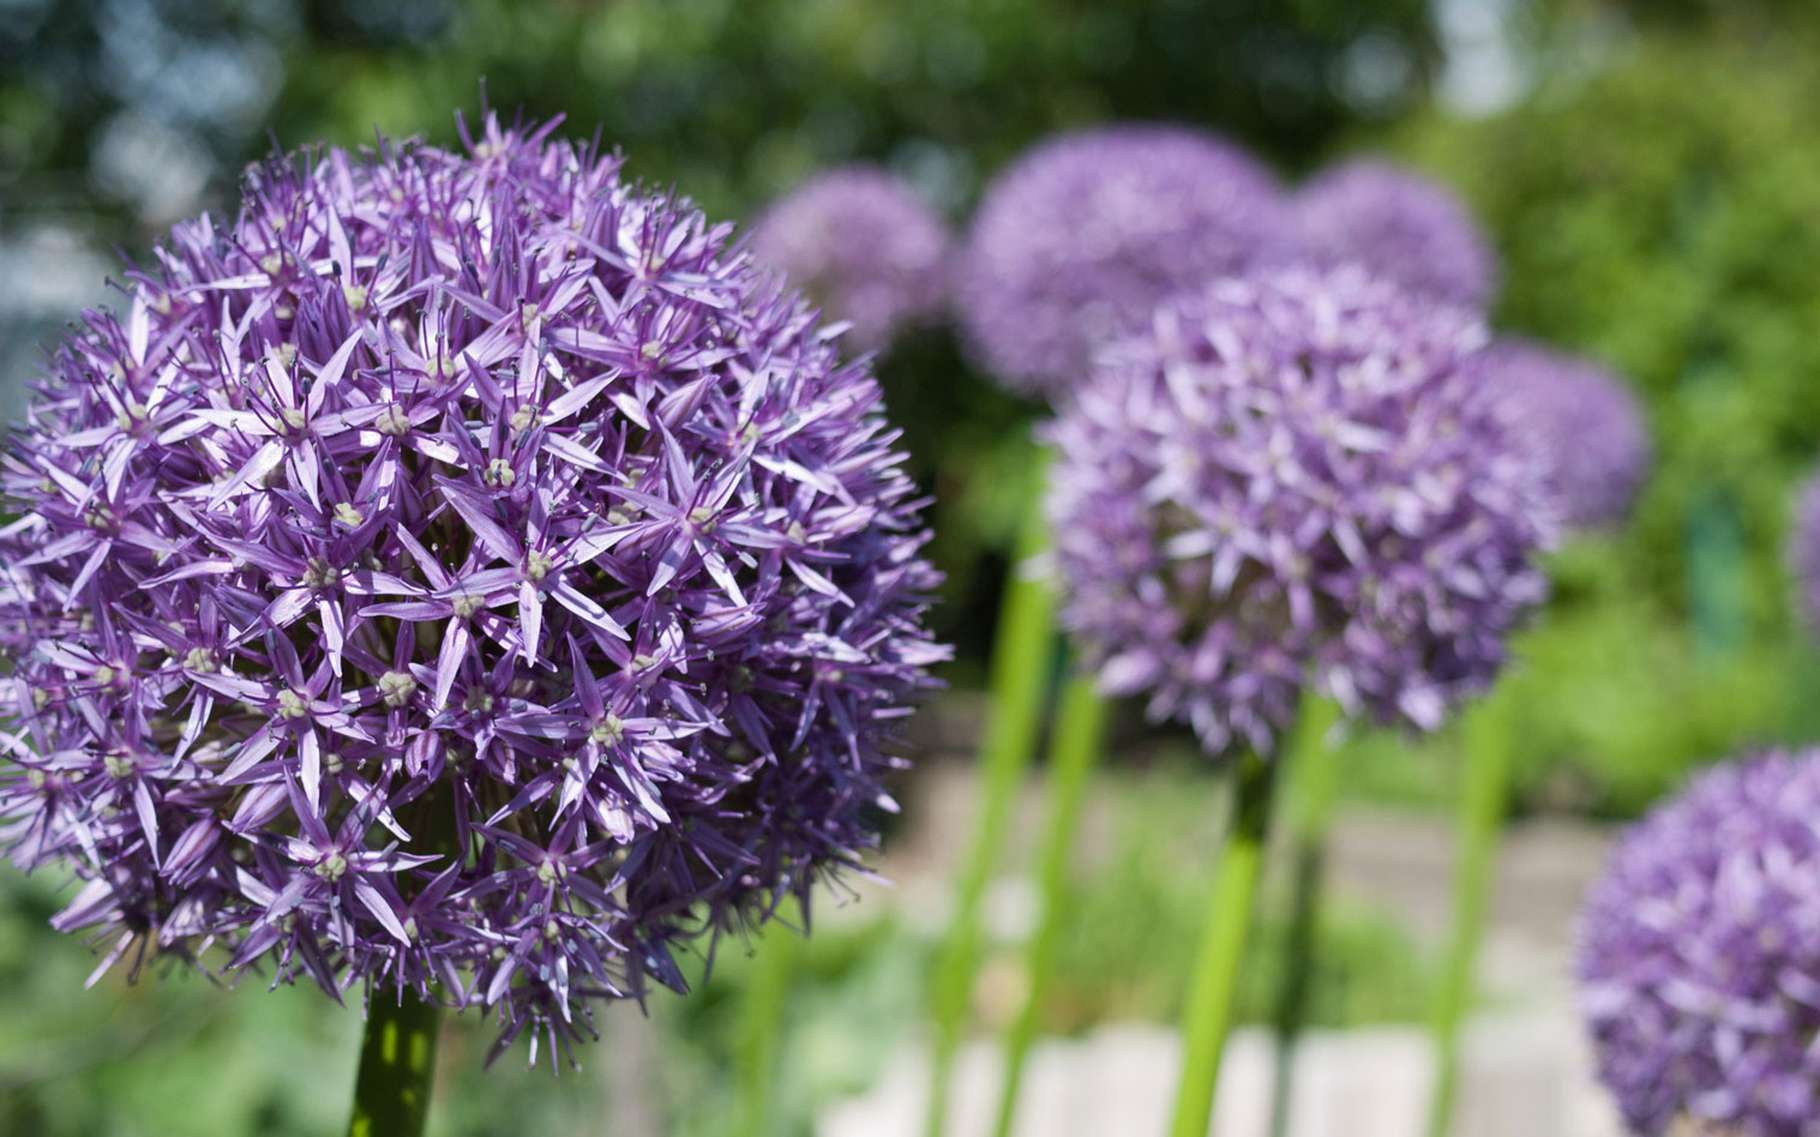 L'ail d'ornement Allium giganteum, spectaculaire sur ses hautes tiges. © Amy, CC by-nc-sa 2.0